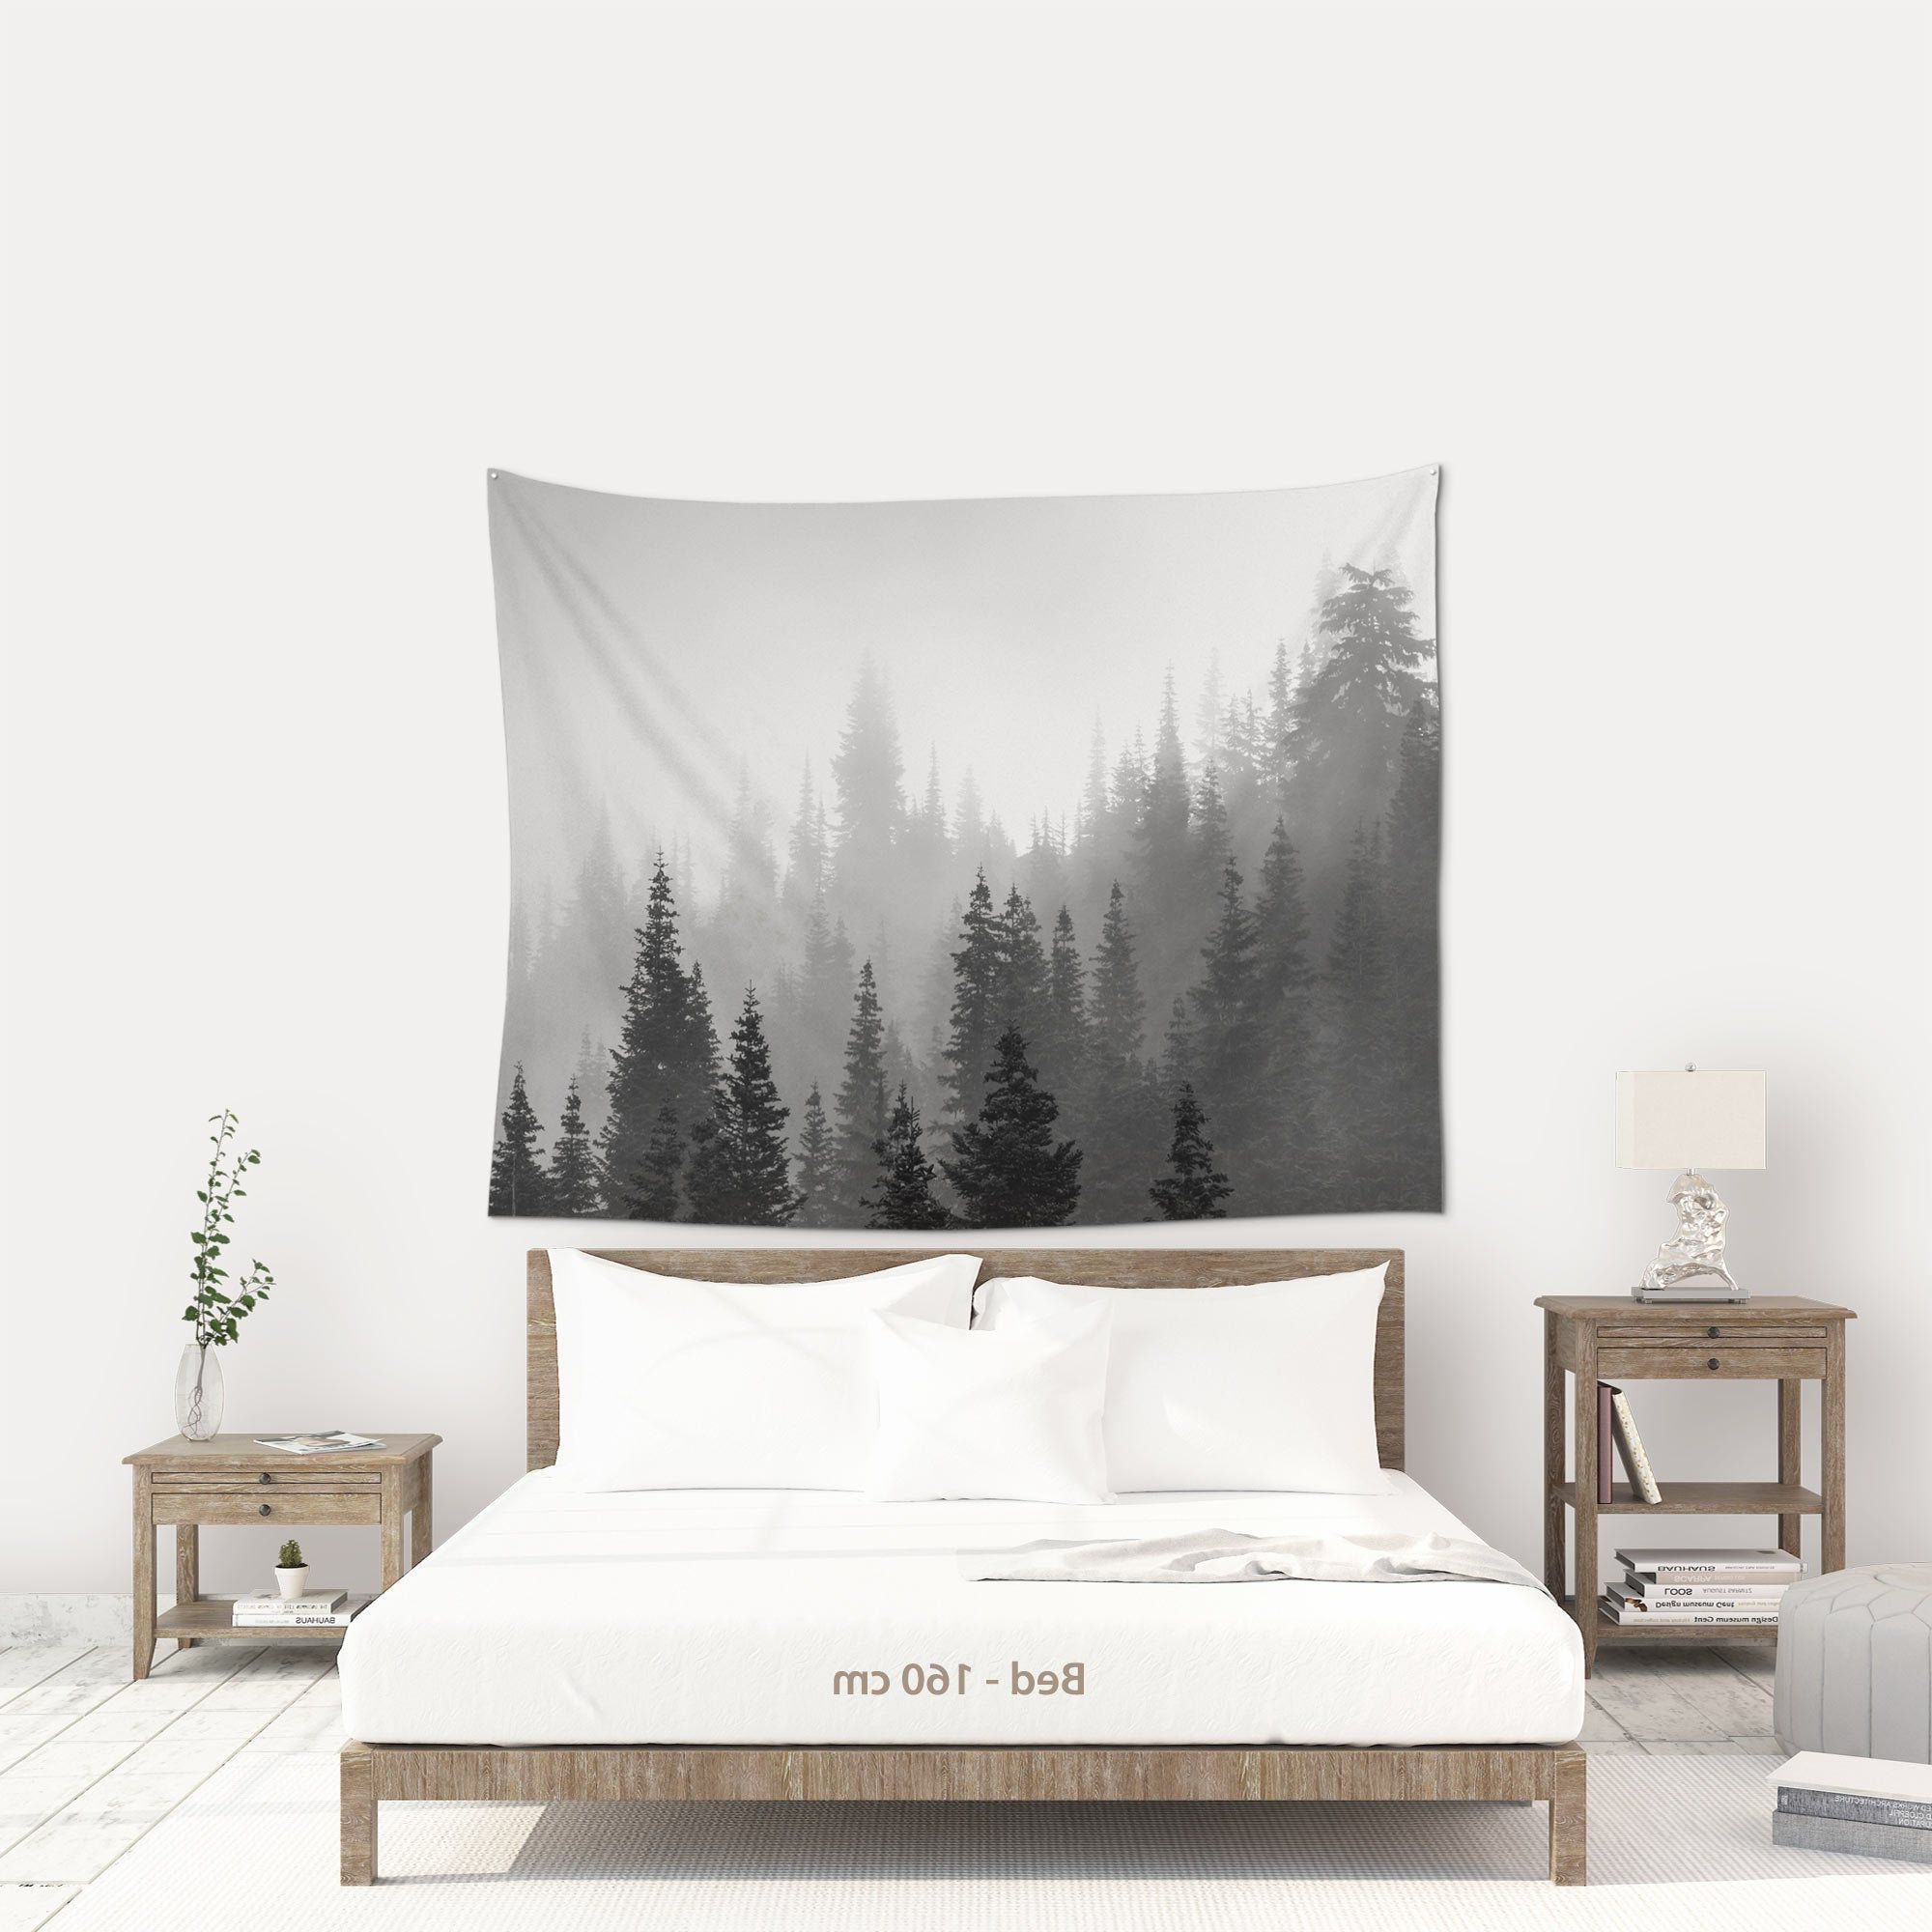 Blended Fabric Ranier Wall Hangings With Hanging Accessories Included Pertaining To Current Tree Tapestry Wall Hanging, Zoom Background, Nature (View 16 of 20)